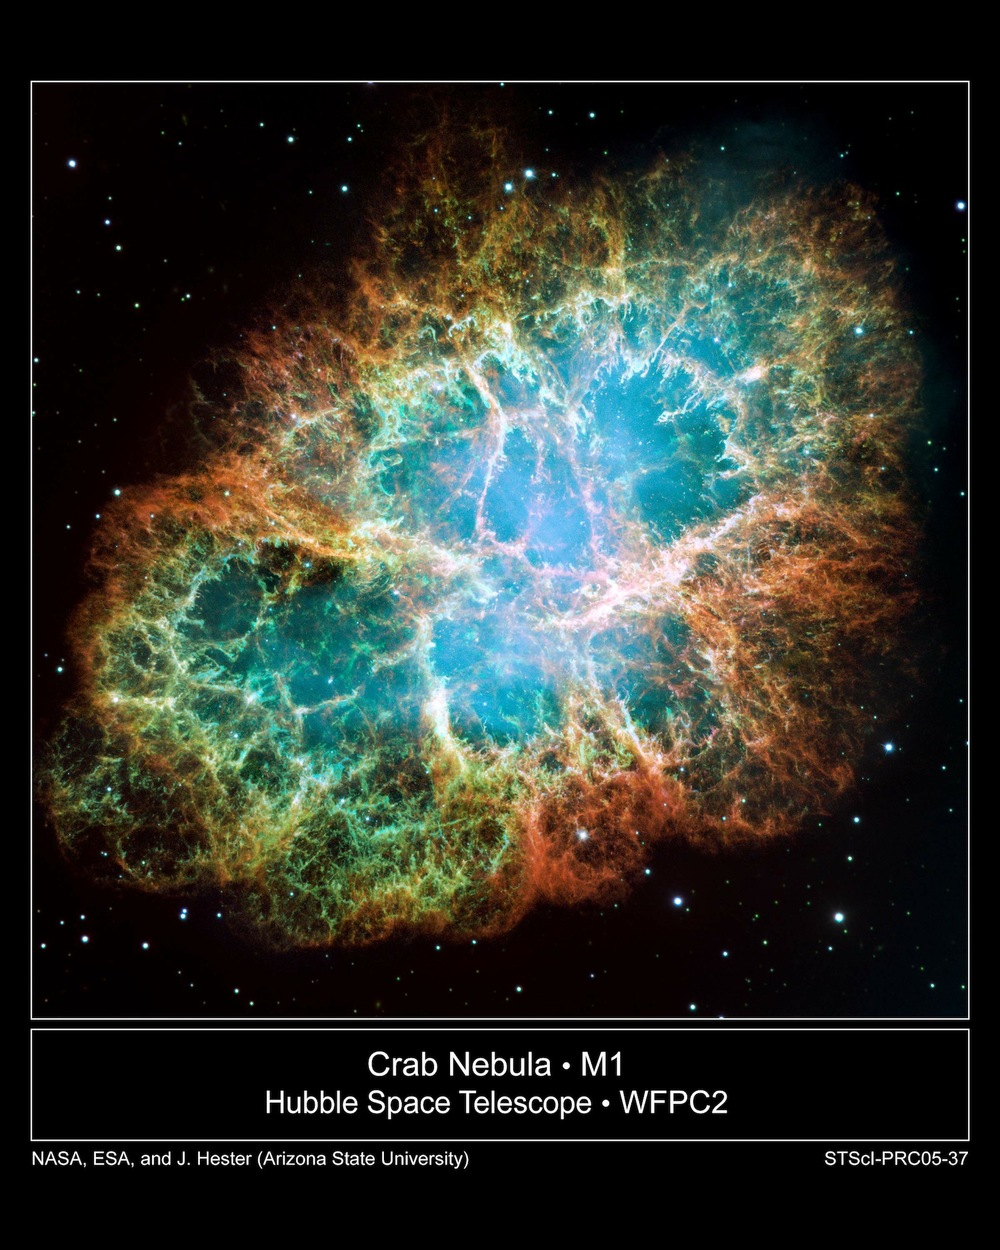 One of two fates await an aging star as its fusion reactions fizzle out. Most stars, including the Sun, become white dwarfs and slowly radiate their residual heat way like the dying embers of a campfire. The most massive stars, however, go out with a bang. Without the pressure from a giant star's internal fusion reaction, its core collapses under its own mass as gravity crushes it form a neutron star. The sudden release of energy blasts the star's outer layers away in an explosion so powerful that it shines with a light billions of times brighter than the original star.  Credit:  Nasa, Esa, J. Hester and A. Loll (Arizona State University)